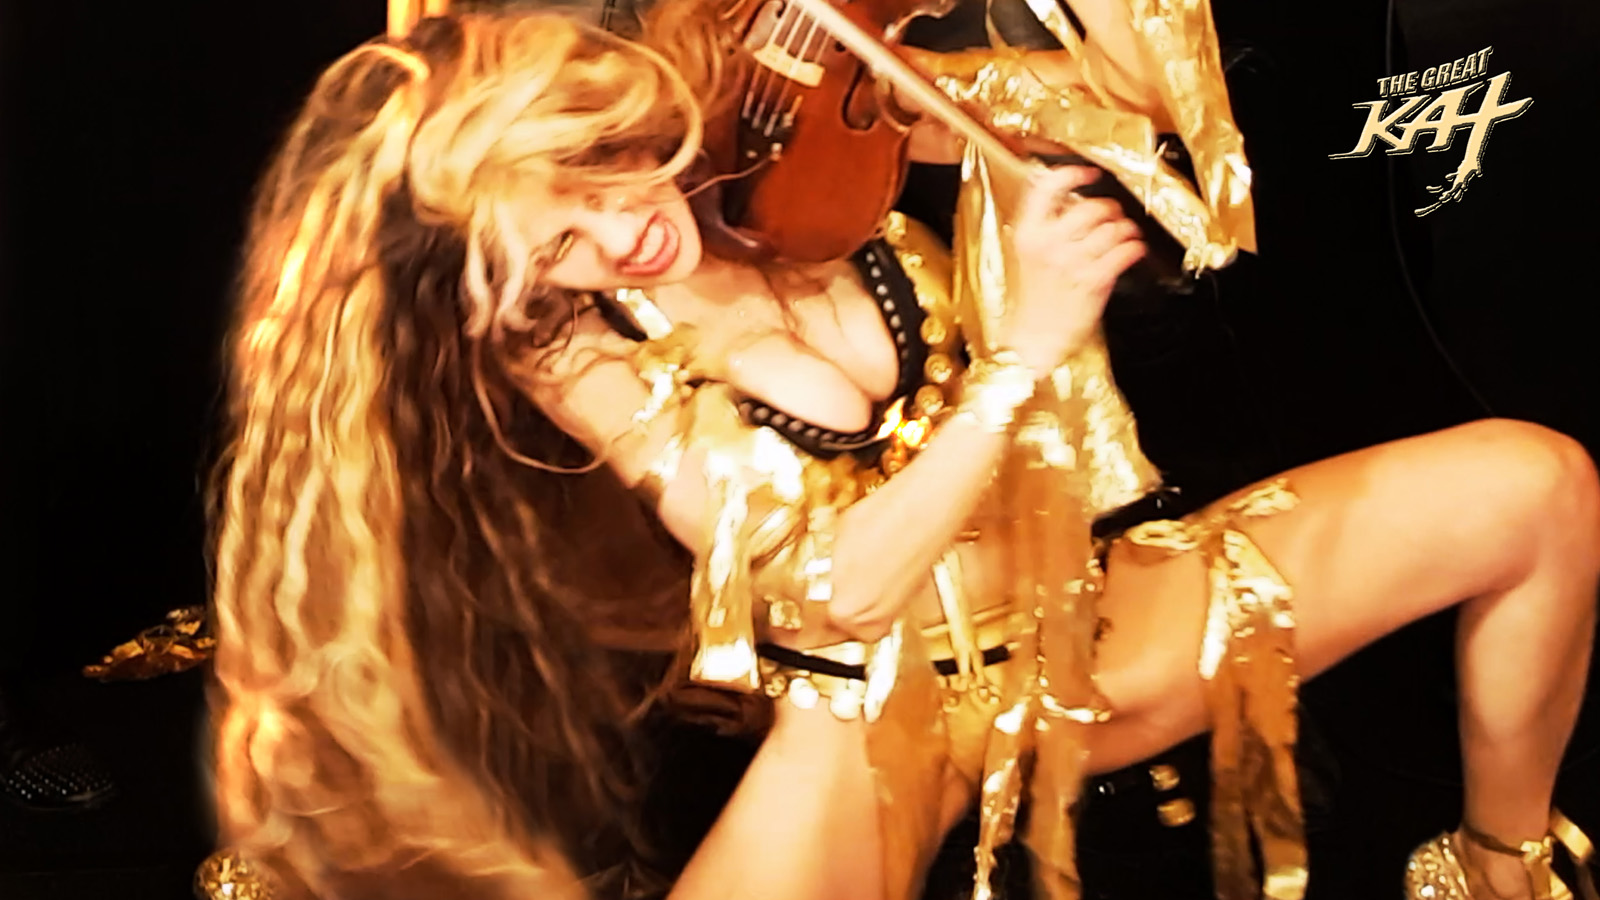 """HOT VIOLIN GYPSY GODDESS!!!!!! From The Great Kat's LISZT'S """"HUNGARIAN RHAPSODY #2"""" MUSIC VIDEO!!!!"""